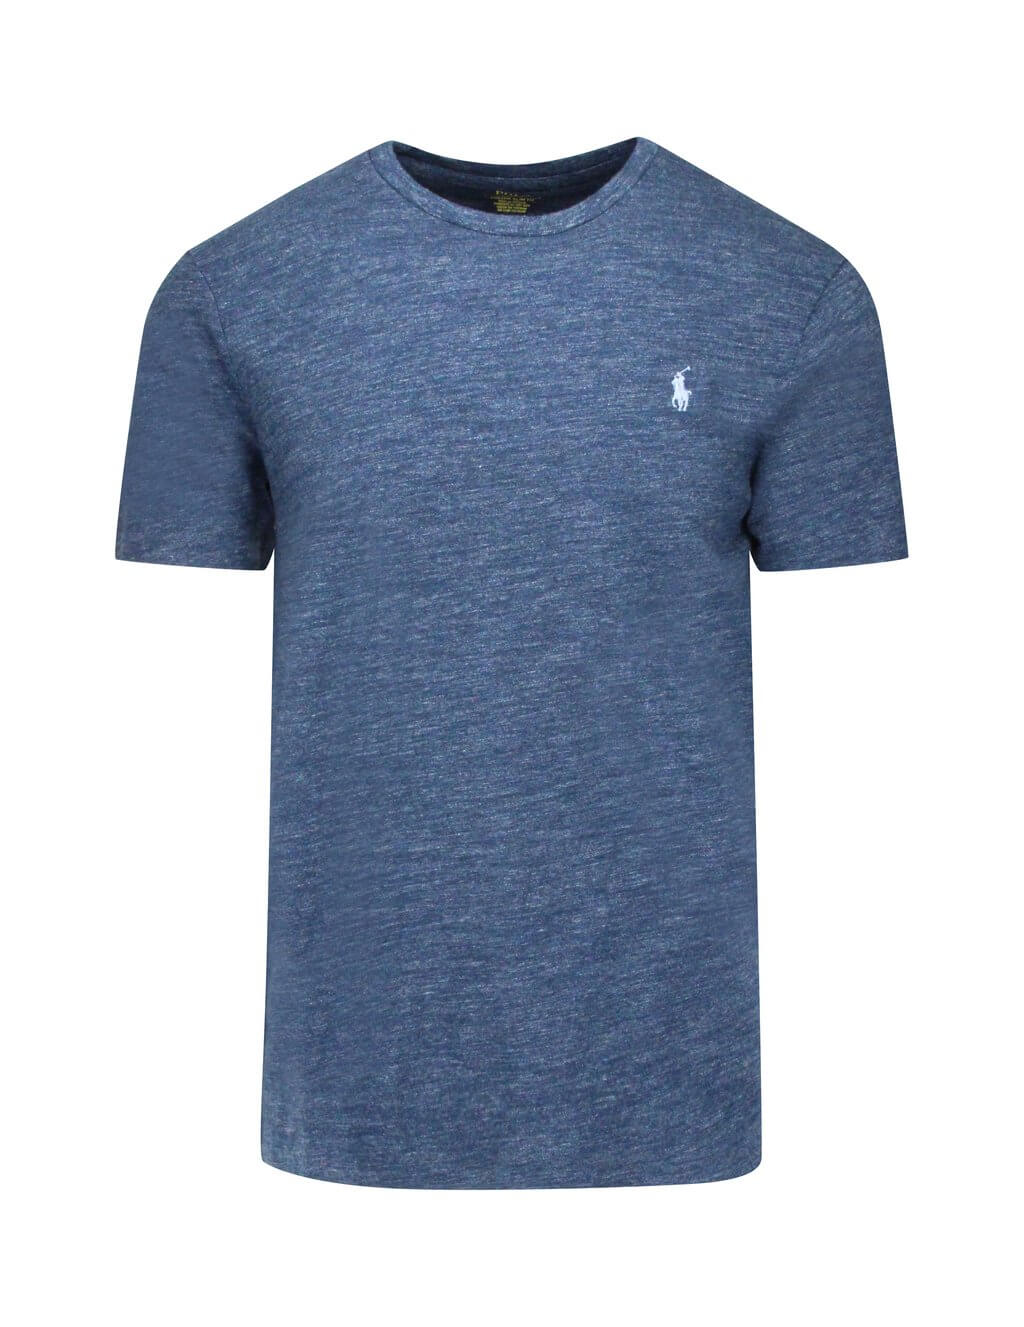 Polo Ralph Lauren Custom Slim Fit Cotton T-Shirt Blue 710671438002 Men's Giulio Fashion